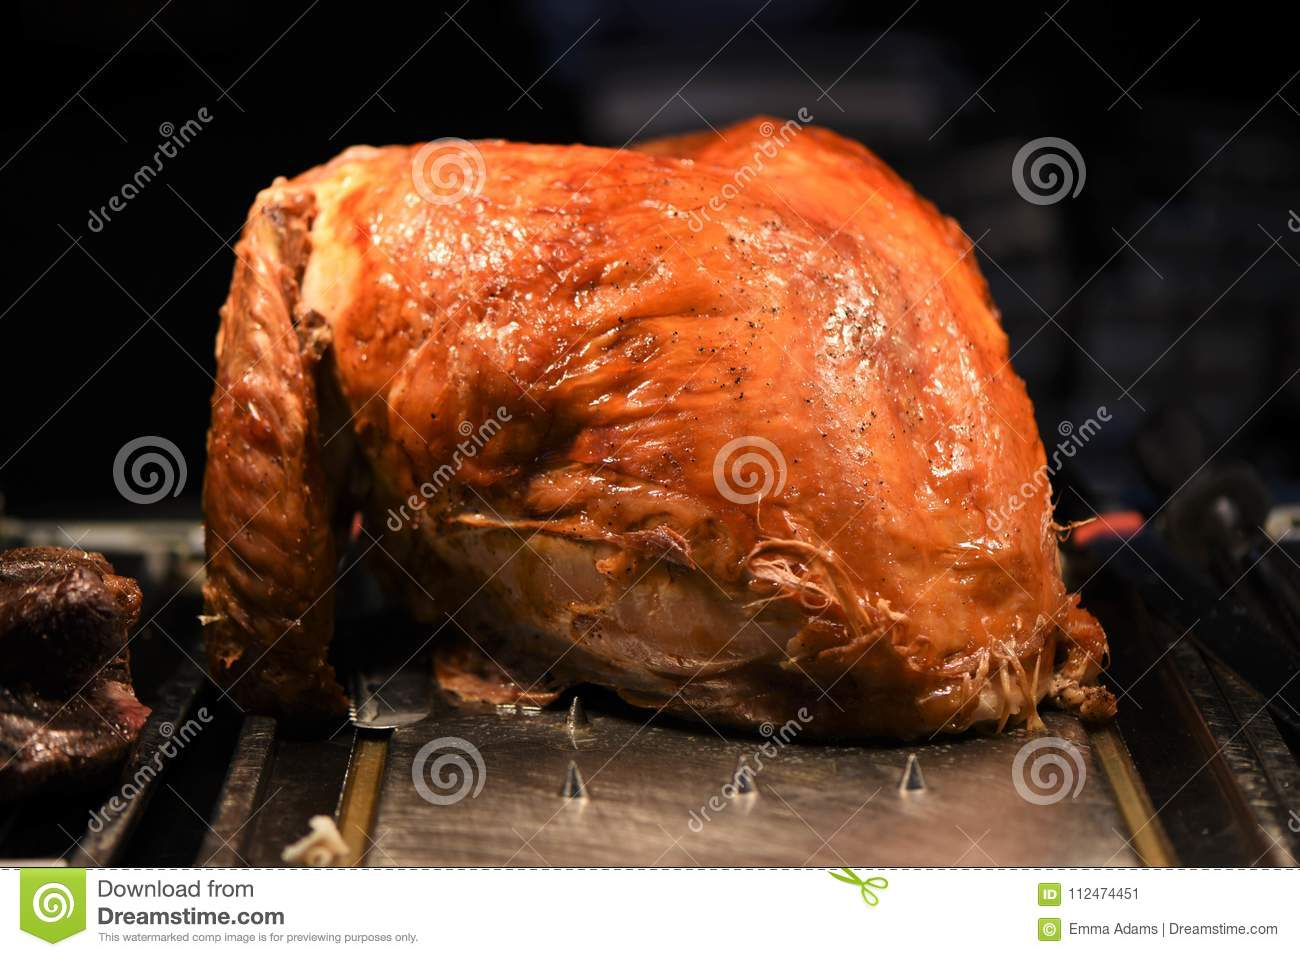 Succulent golden whole roast turkey joint of meat resting and ready to carve